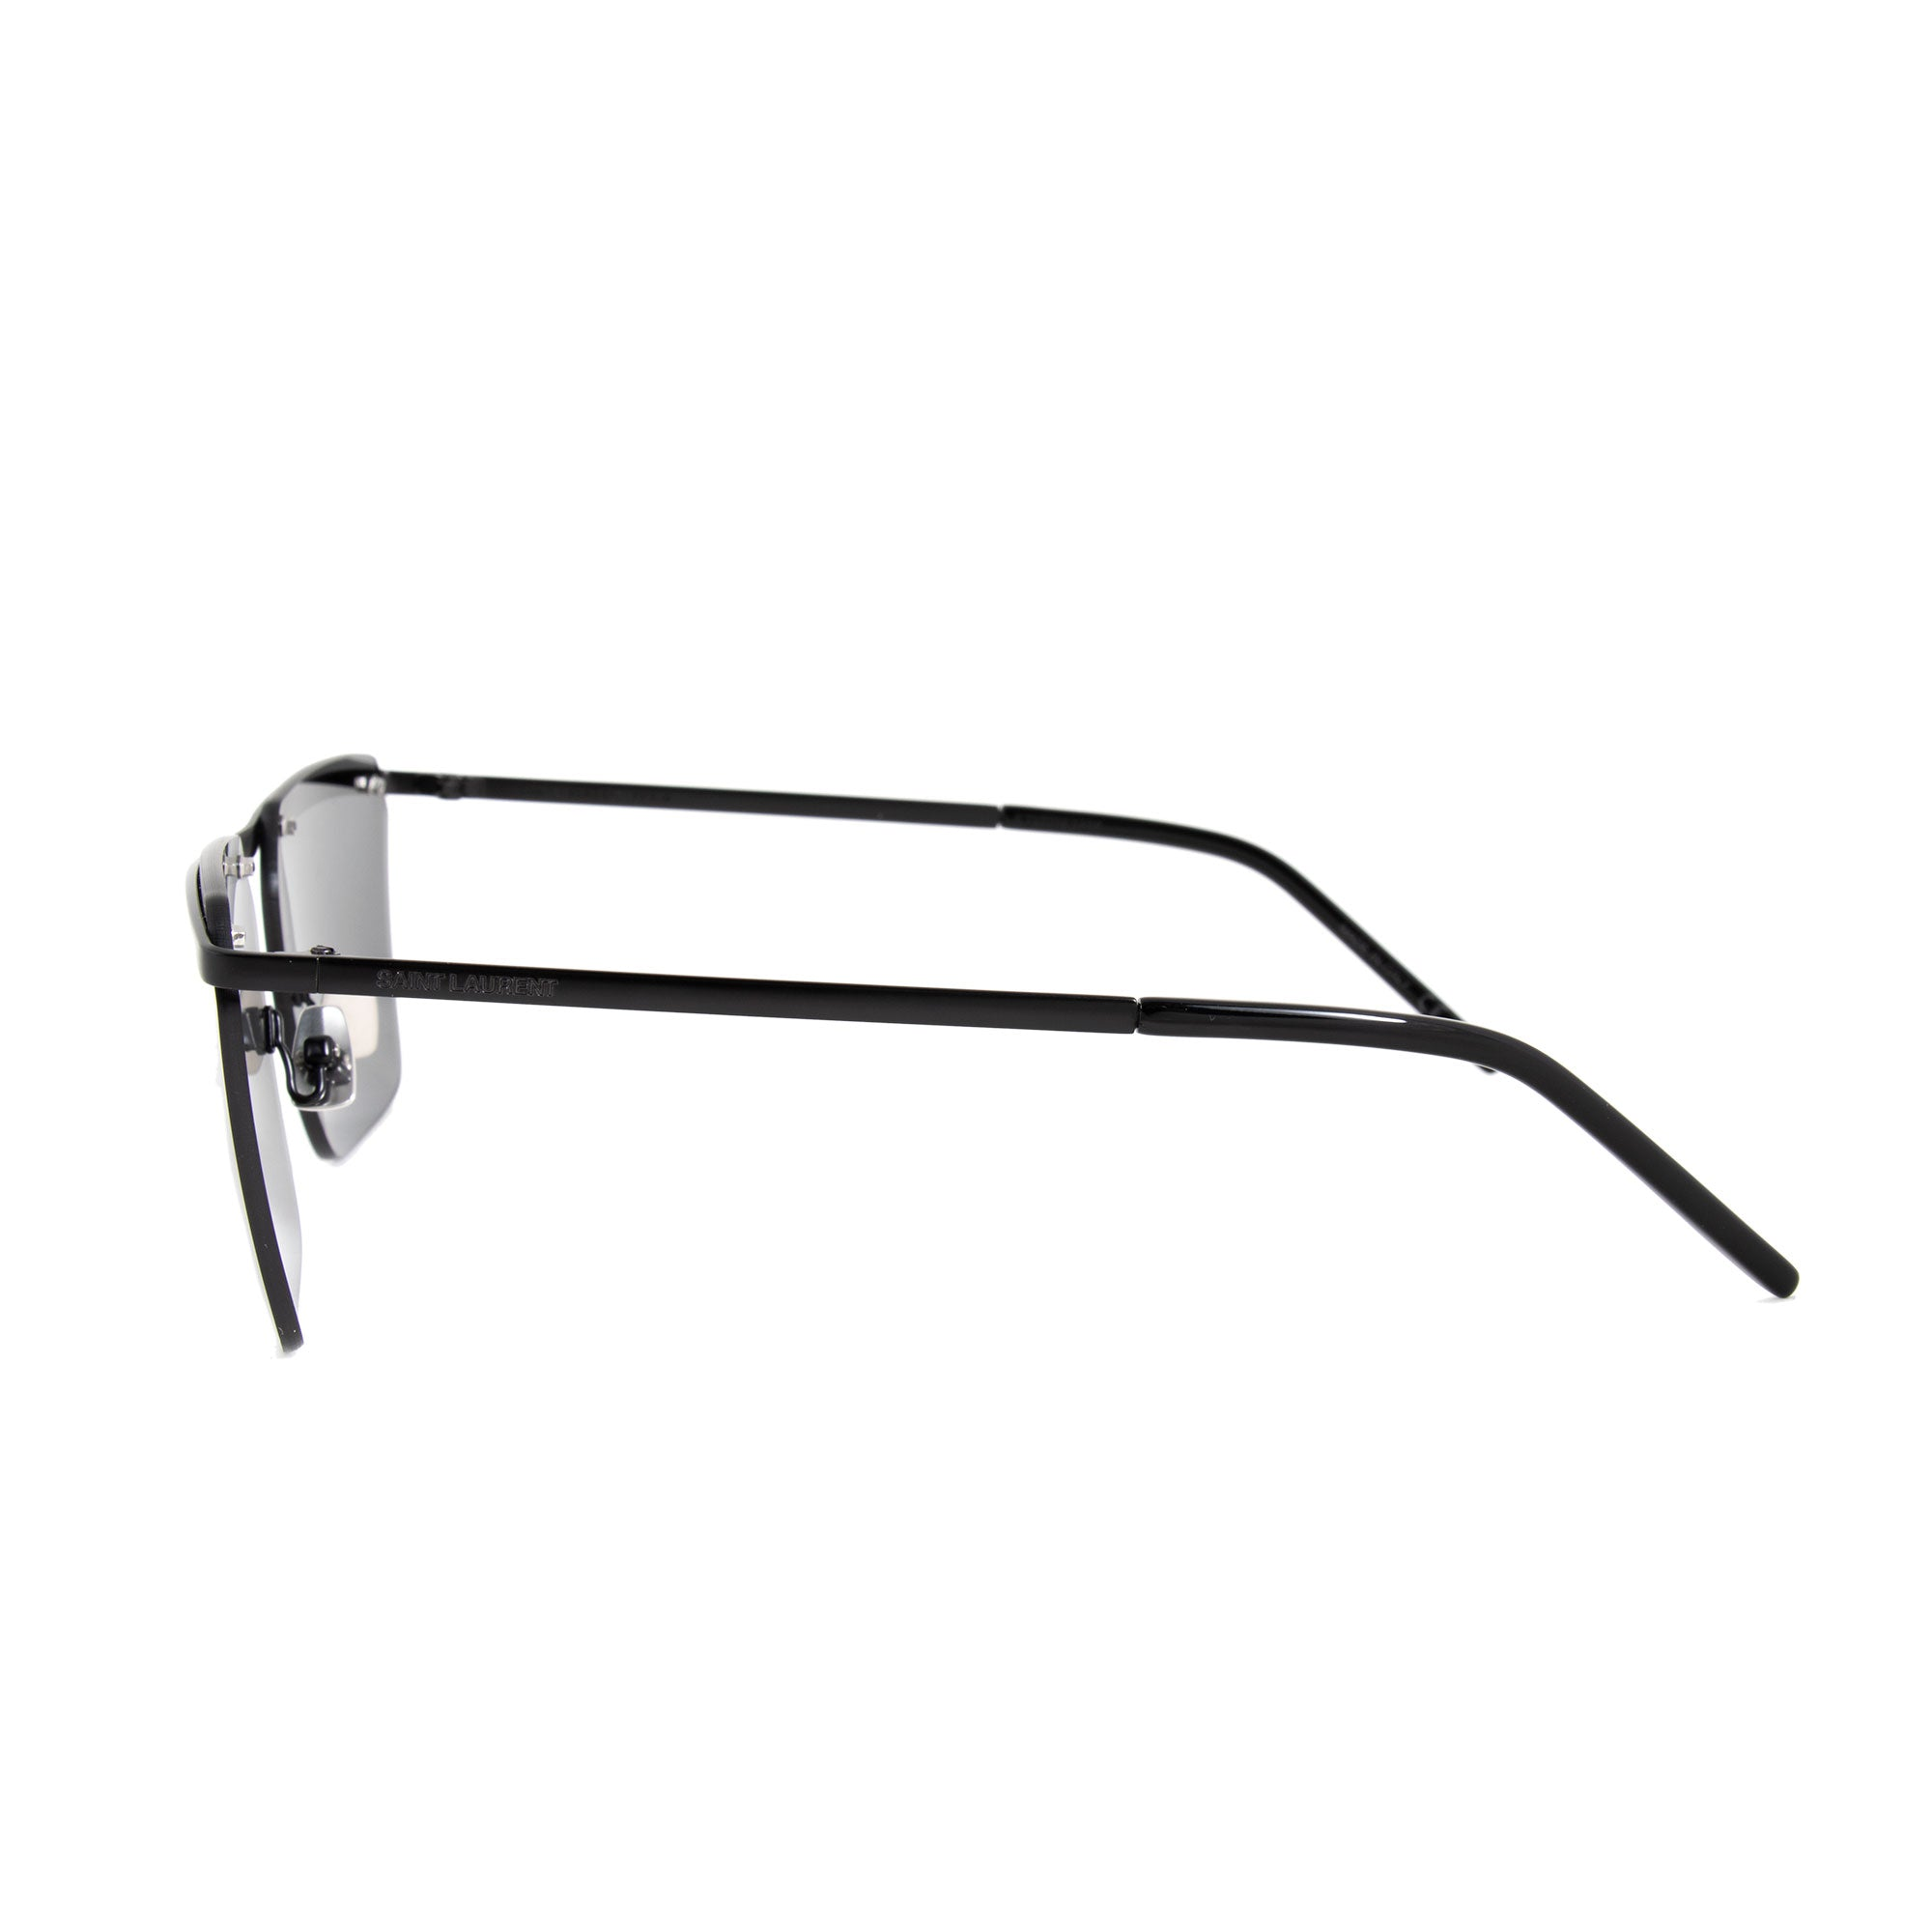 Saint Laurent Saint Laurent SL 243 004 60 Rimless Rectangular Sunglasses